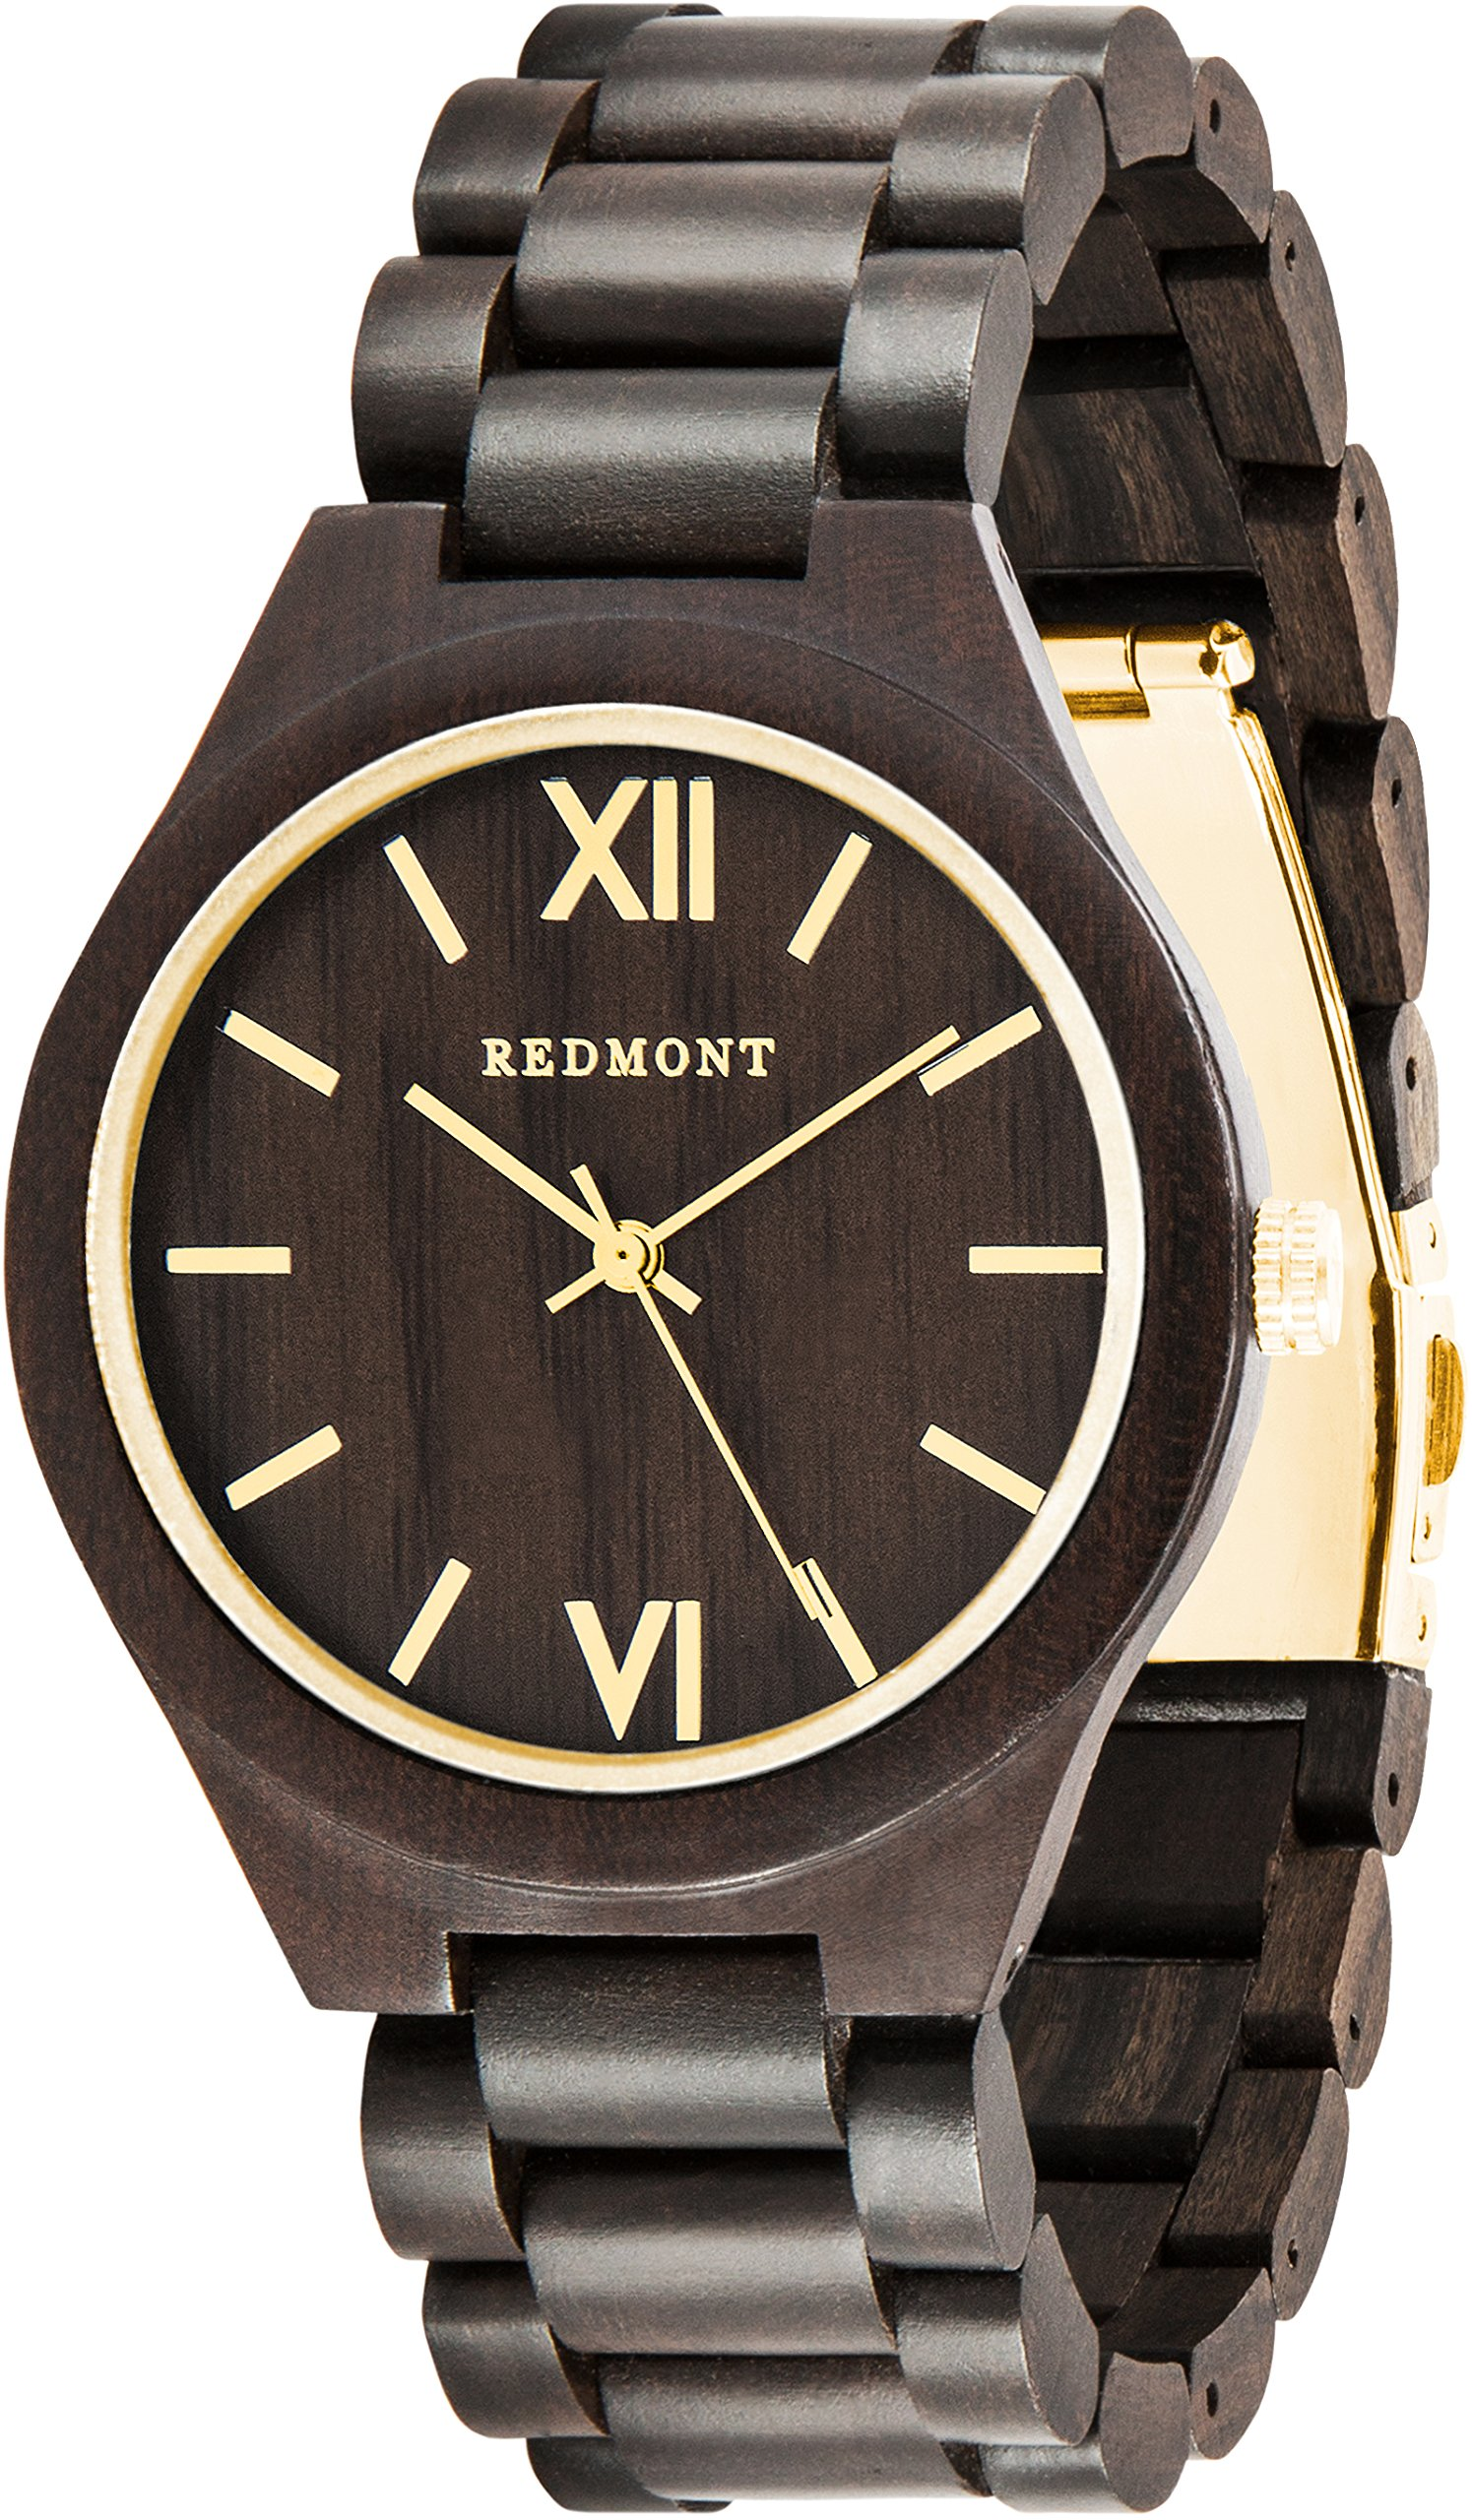 OLIVER REDMONT Wooden watch from genuine sandalwood | Exclusive wooden gift packaging (GOLD EDITION)